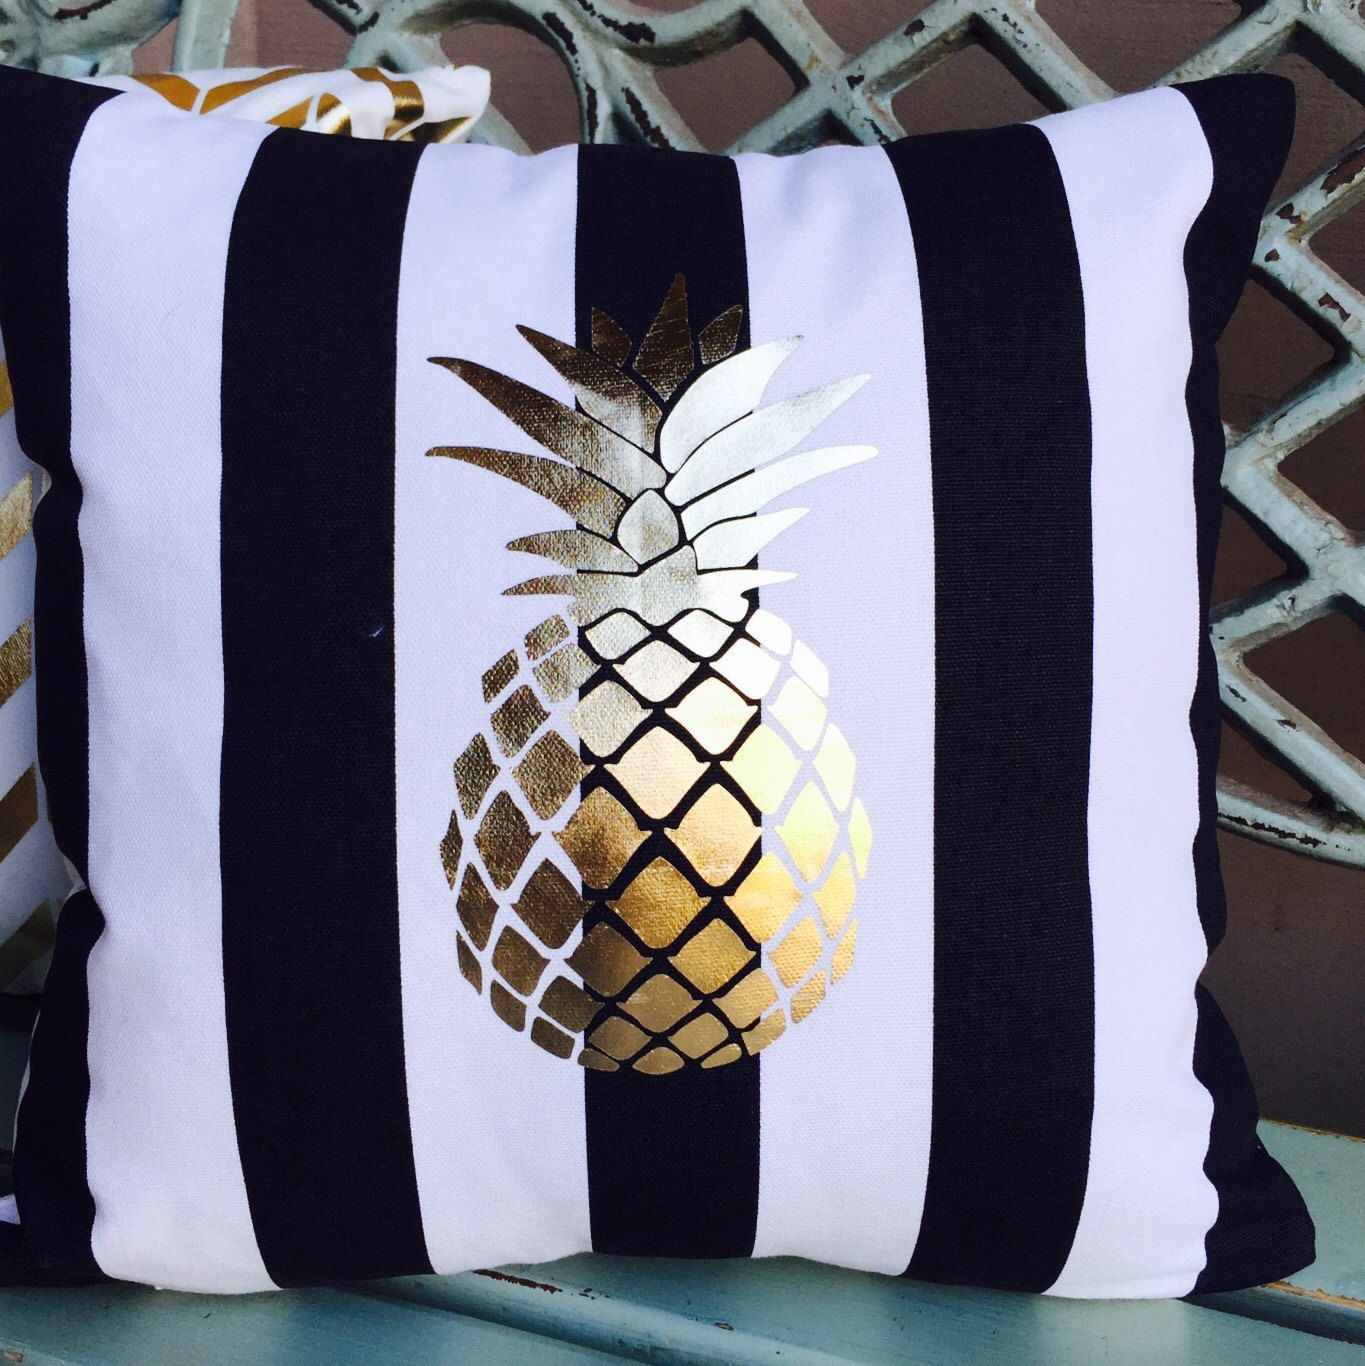 Gold Foil Pineapple On Black Amp White Stripes Pillow With